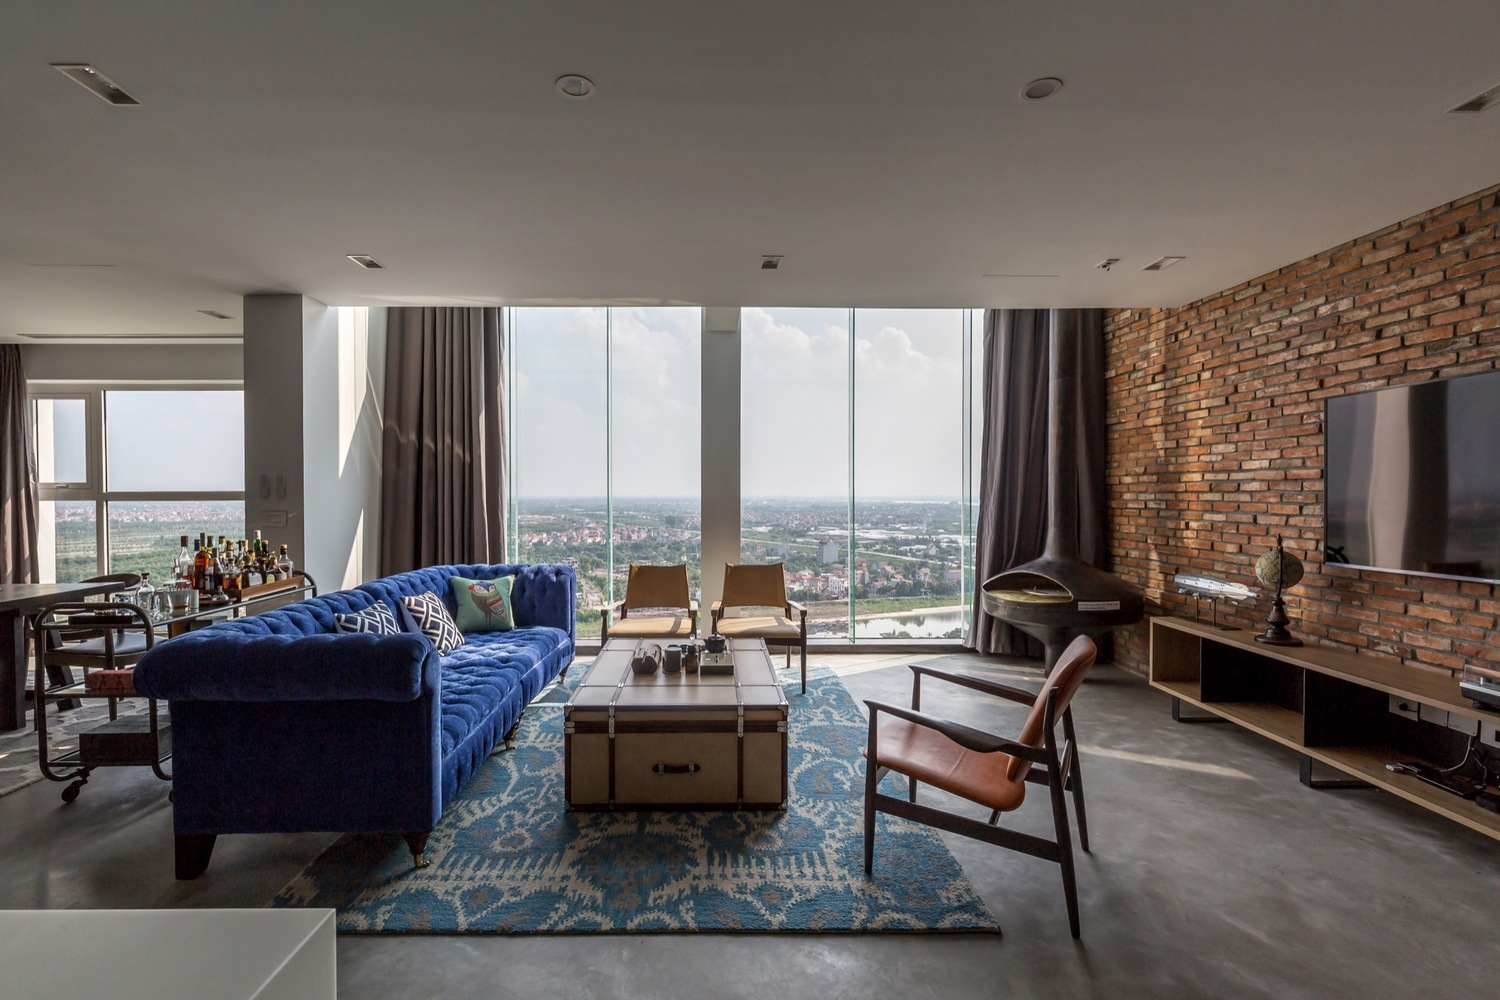 penthouseecopark_photos_3.jpg